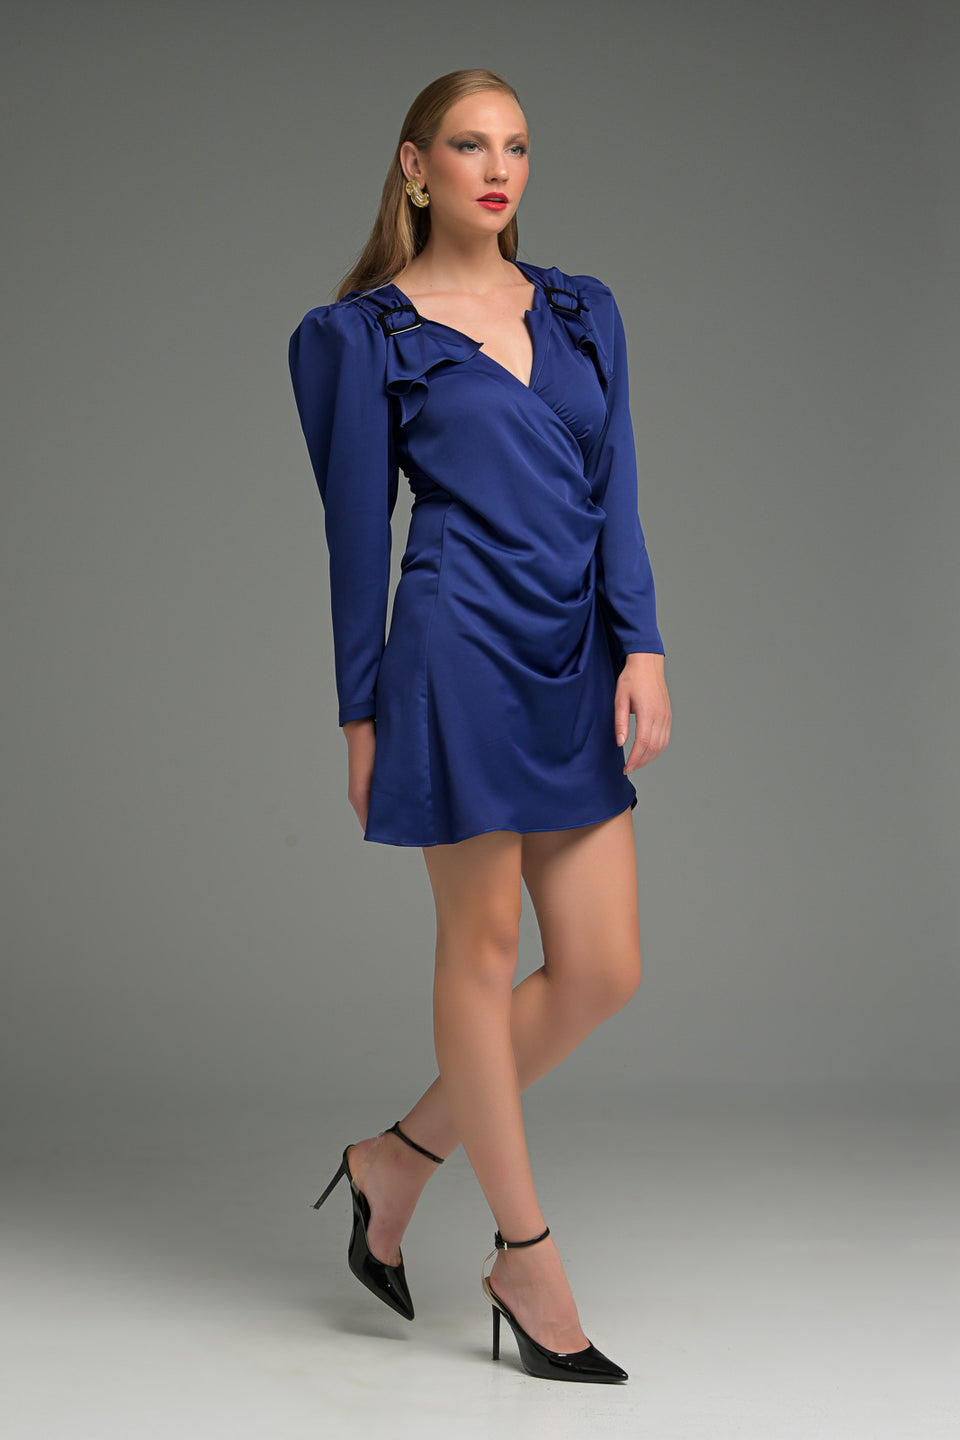 WRAP MINI DRESS WITH SHOULDER PAD AND DECORATIVE BUCKLE ΟΝ ΤΗΕ SHOULDERS WRAP MINI DRESS WITH SHOULDER PAD AND DECORATIVE BUCKLE ΟΝ ΤΗΕ SHOULDERS